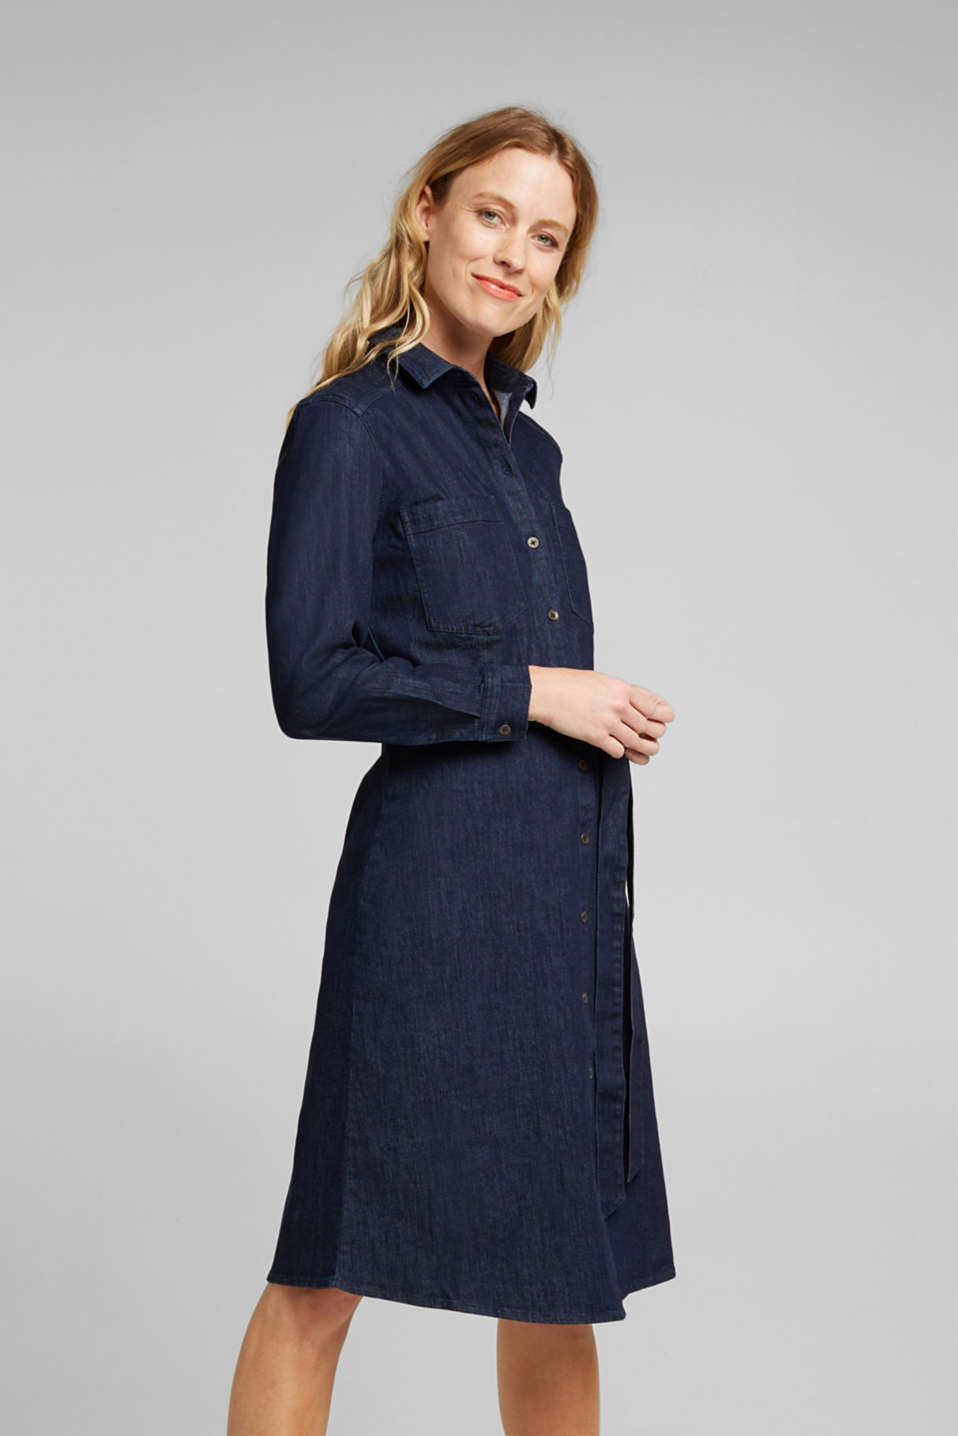 Esprit - Hemdblusenkleid aus Stretch-Denim